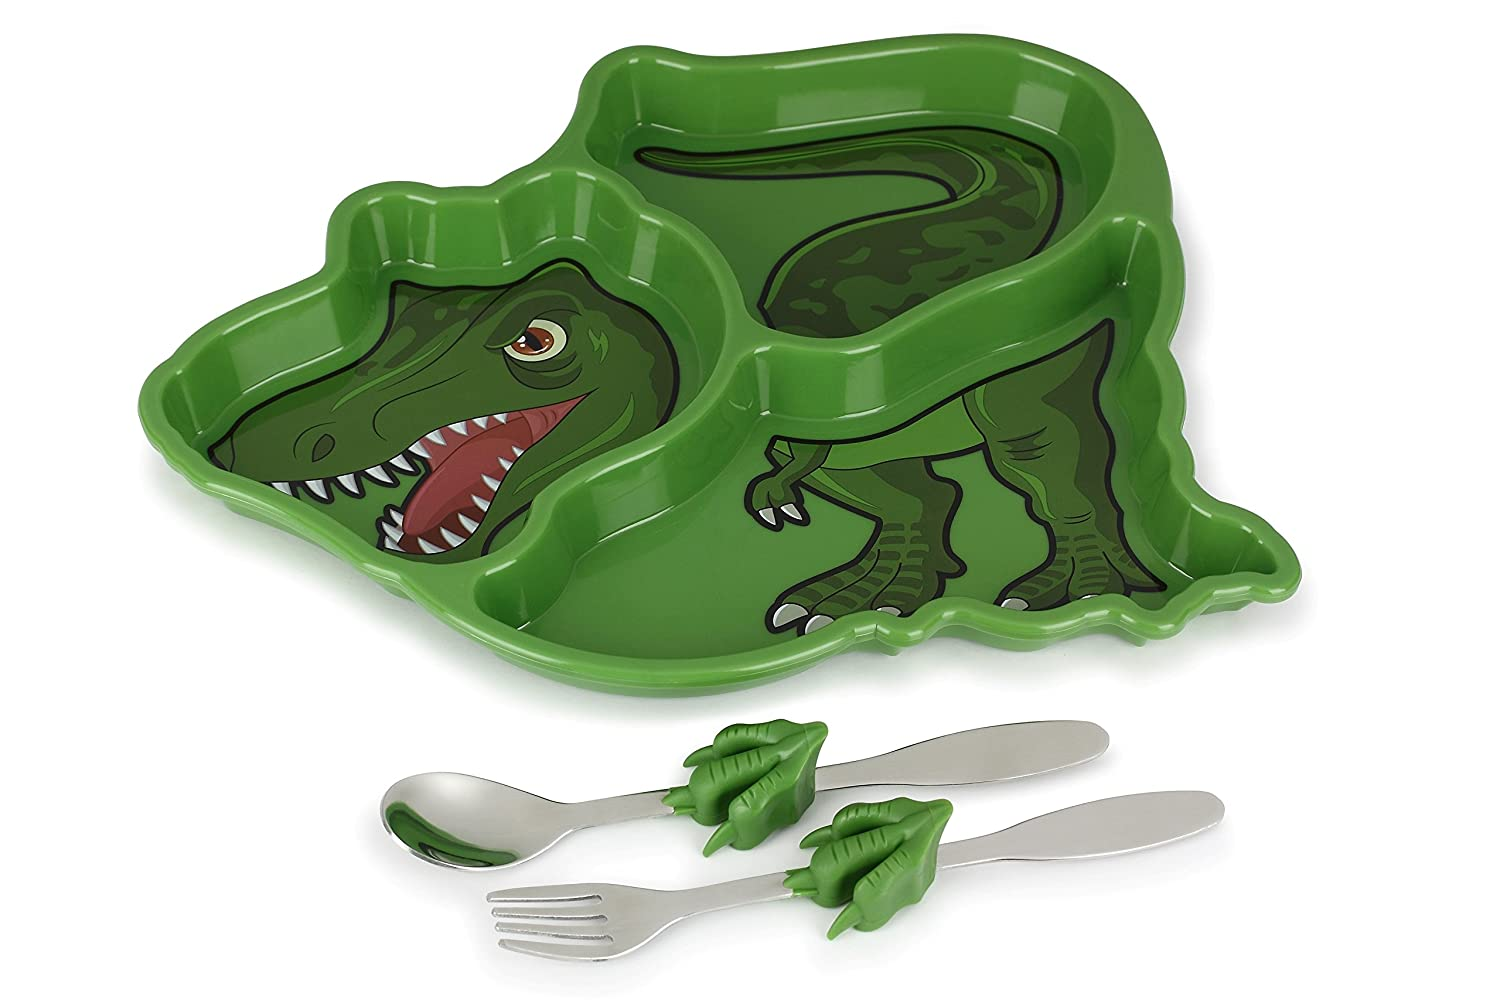 KidsFunwares Me Time Meal Set (T-Rex Dinosaur) – 3-Piece Set for Kids and Toddlers – Plate, Fork & Spoon that Children Love - Spark your Child's Imagination & Teaches Portion Control - Dishwasher Safe